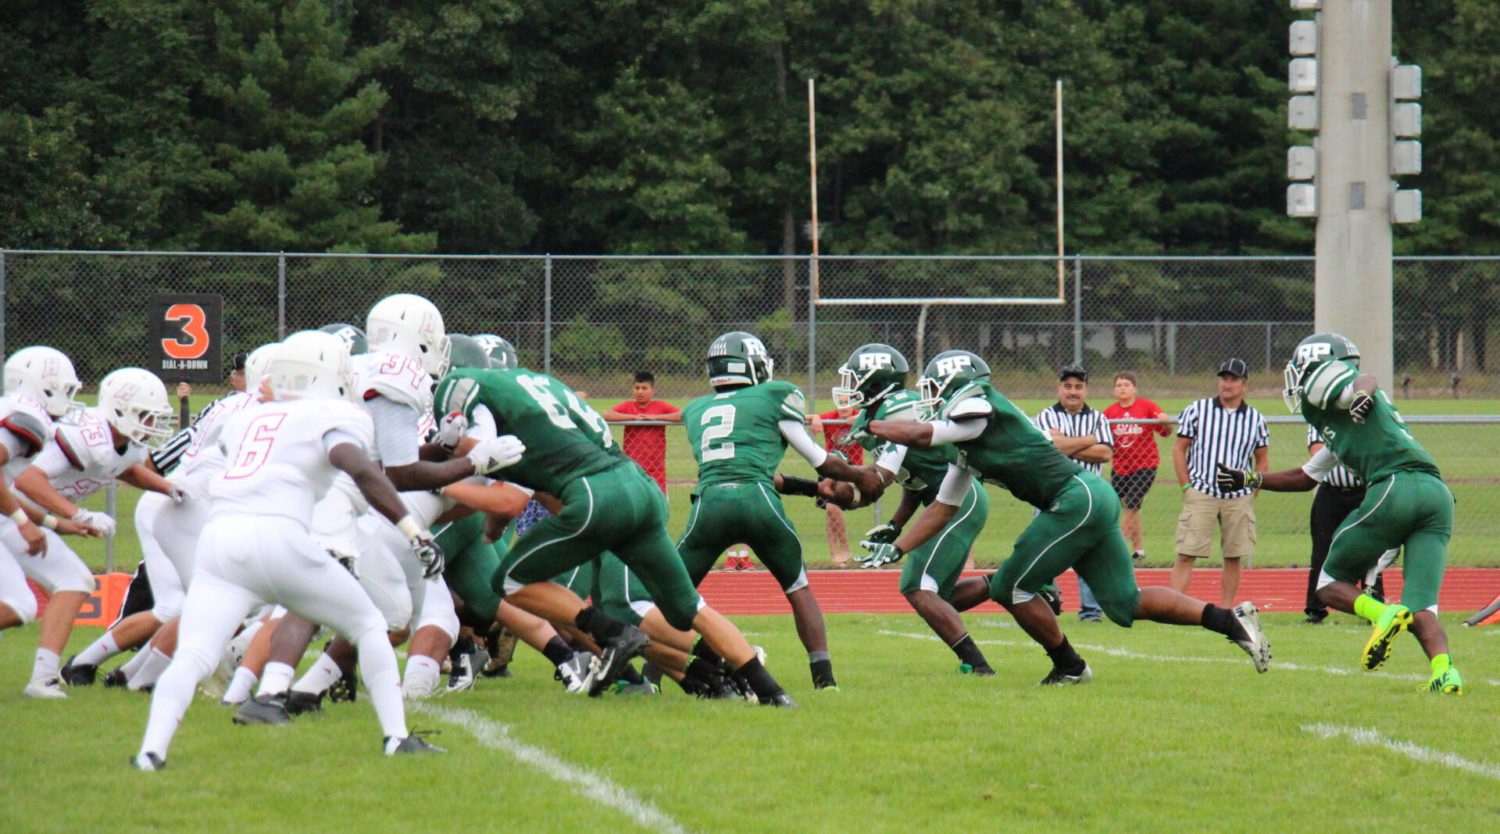 Oakes-Owens, new starters propel Reeths-Puffer past Holland 41-27